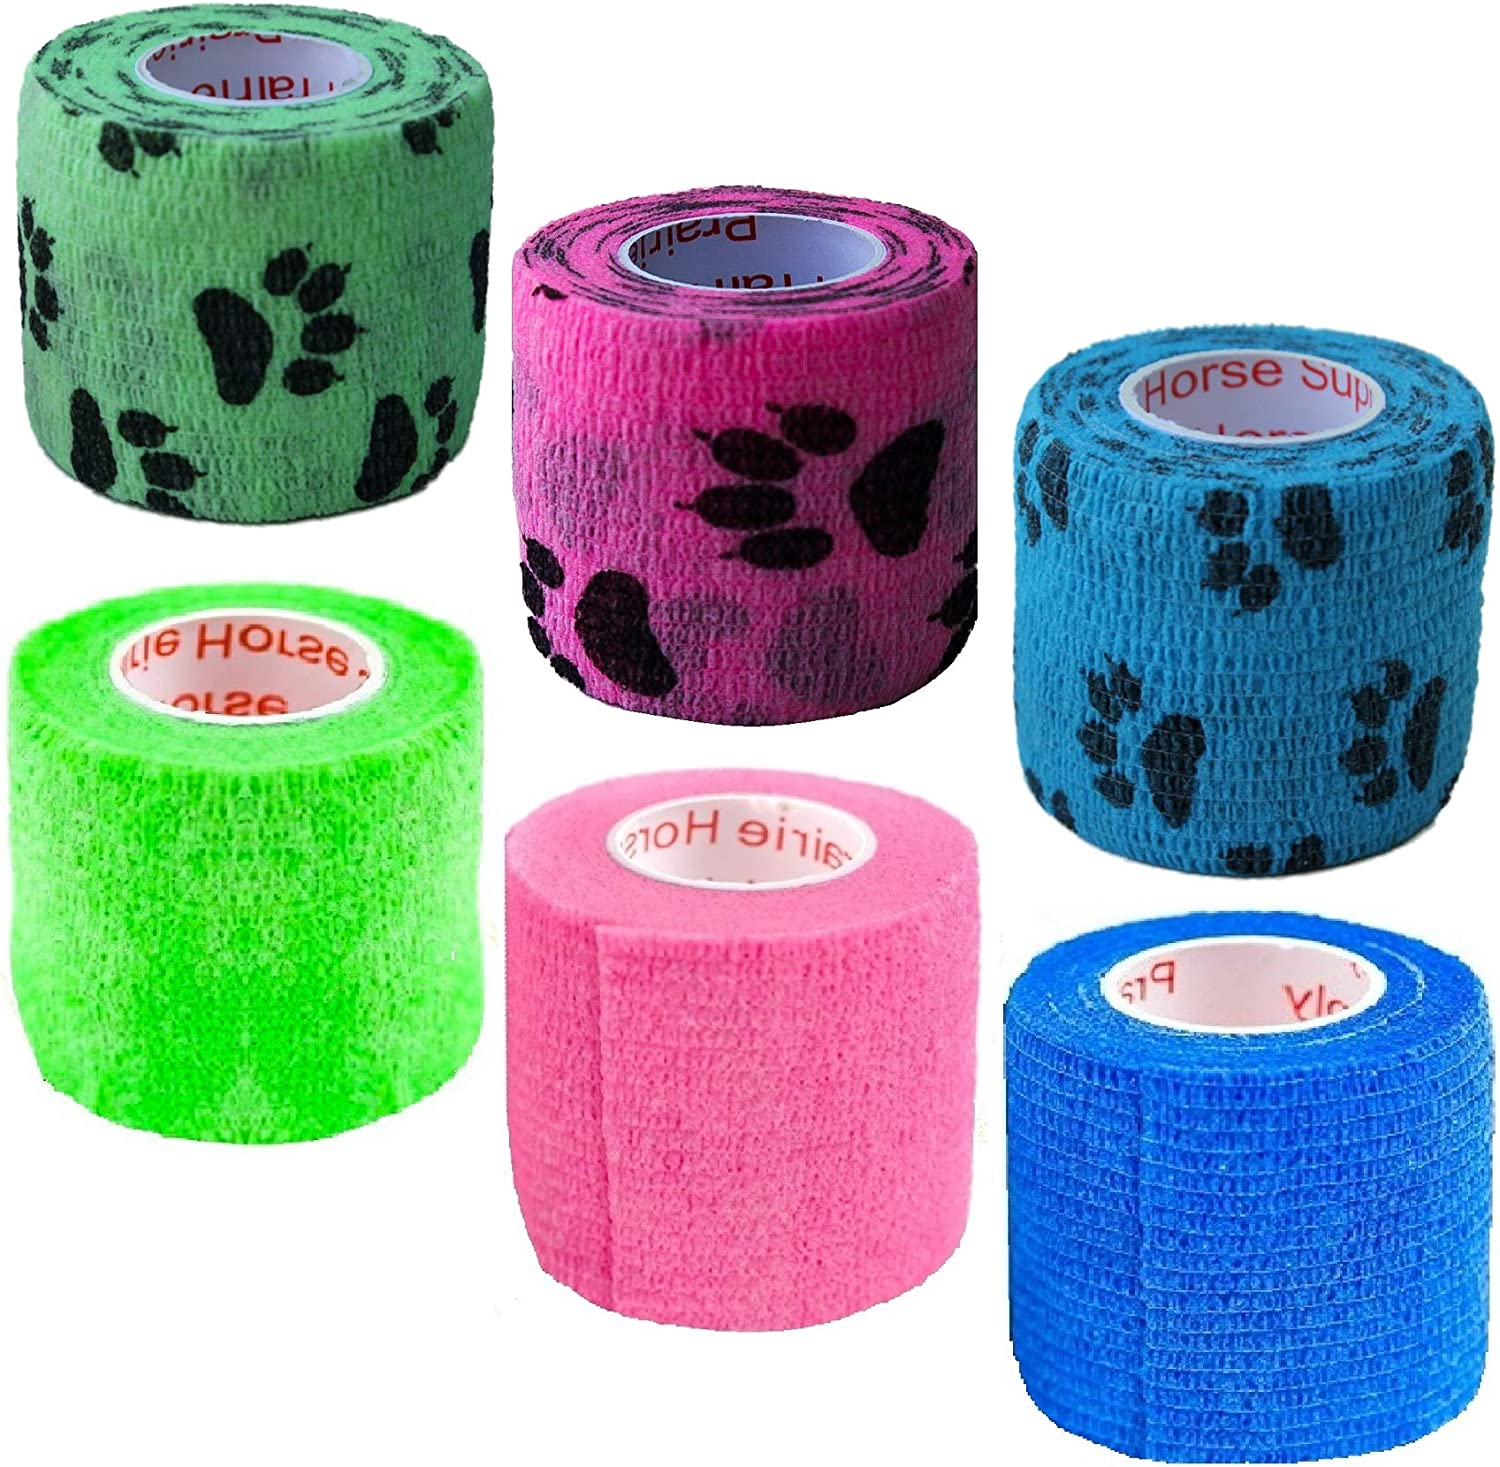 2 Inch Vet Wrap Tape Bulk (Assorted Colors) (6, 12, 18, or 24 Packs) Self-Adhesive Self Adherent Adhering Flex Bandage Rap Grip Roll for Dog Cat Pet Horse 81w0bbXqEJL